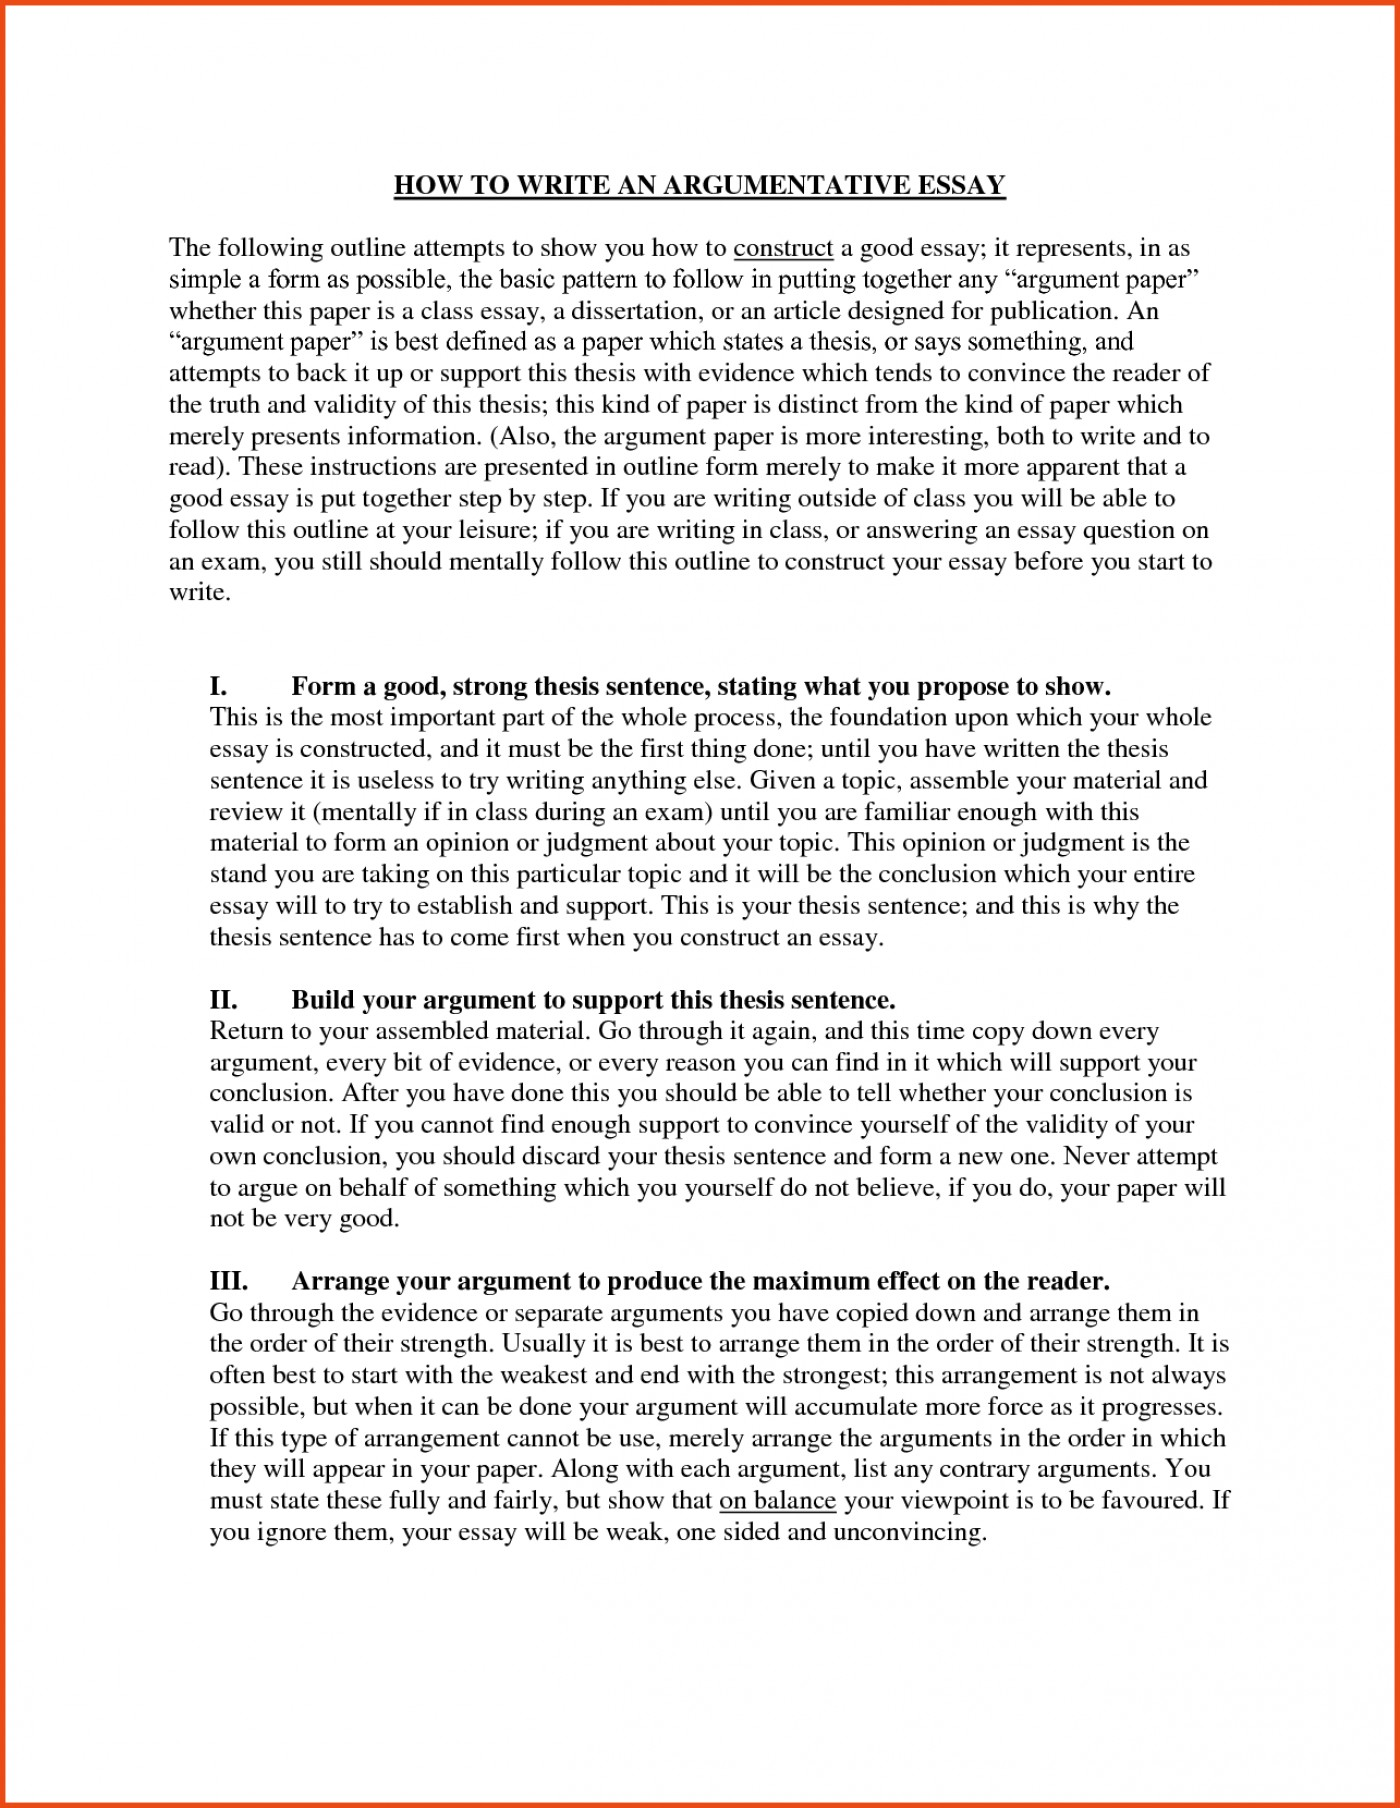 005 Essay Example How To Start An Brilliant Ideas Of Good Ways About Yourself Dissertation Nice Amazing With A Hook Quote Analysis On Book 1400